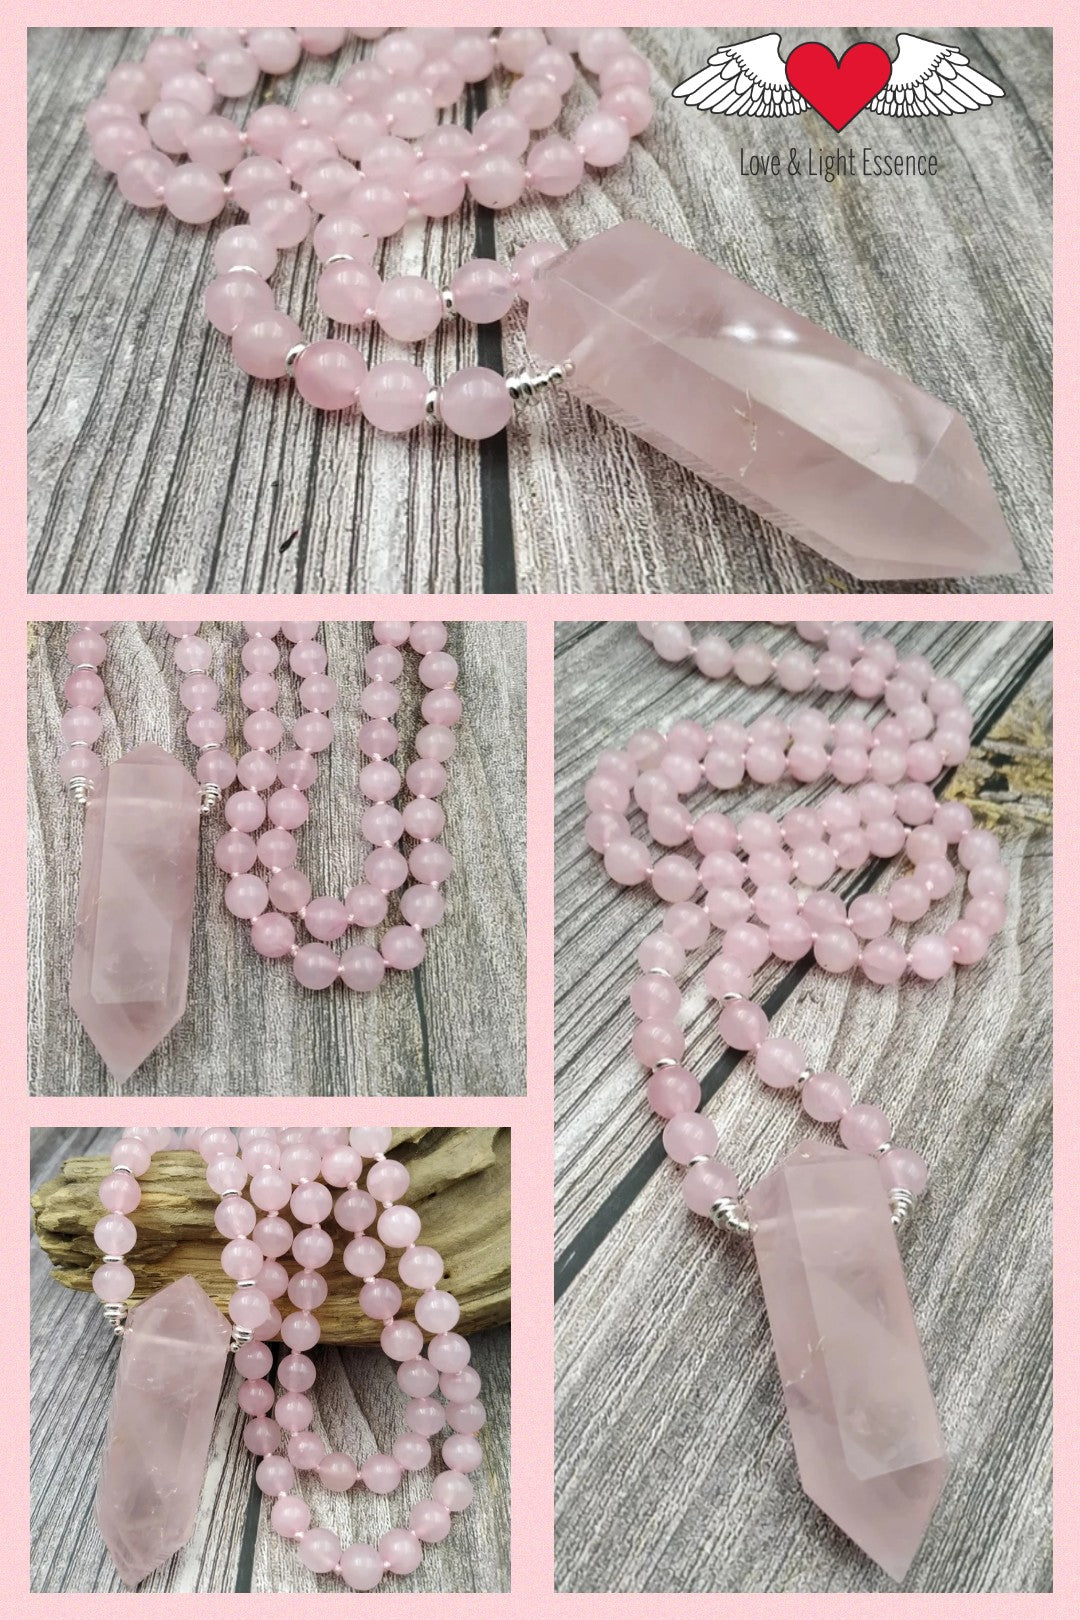 108 Mala Rose Quartz Necklace